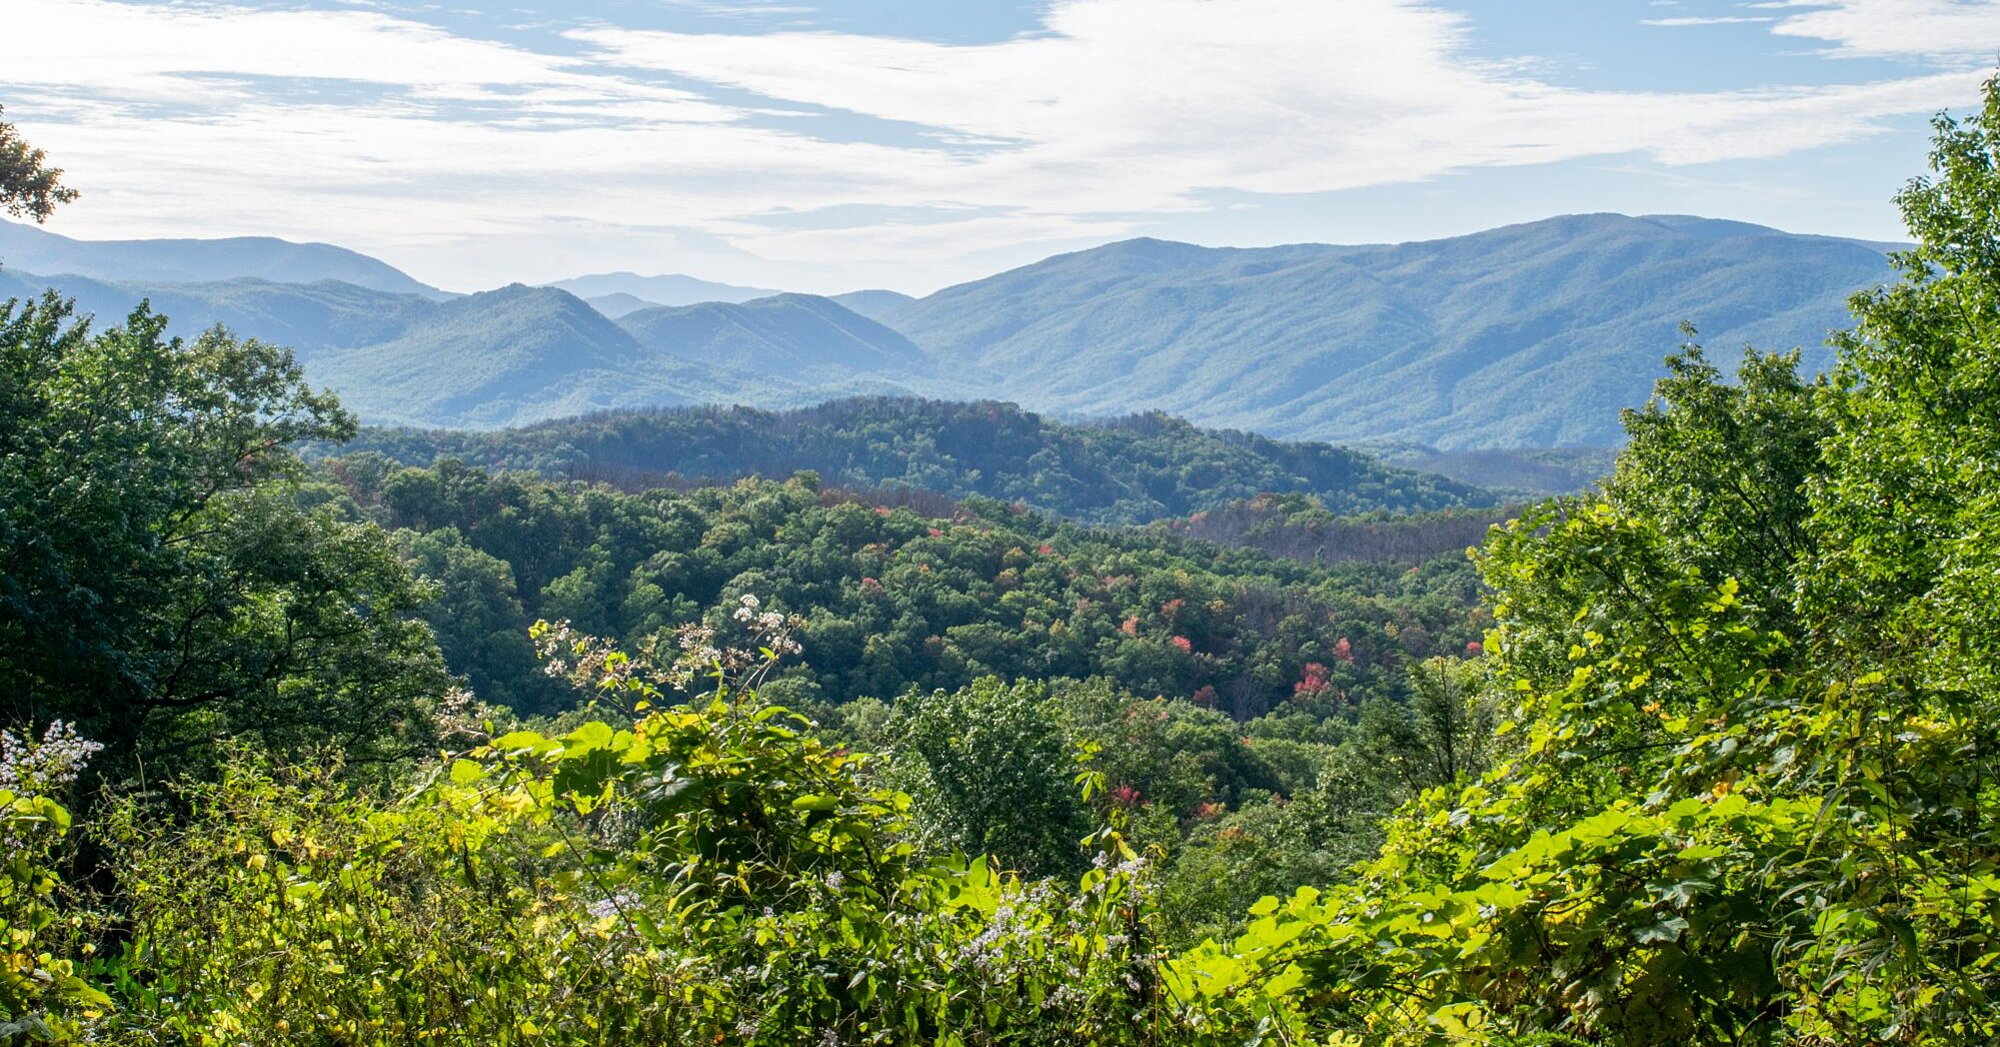 The Best Southern Mountain Towns for Retirement